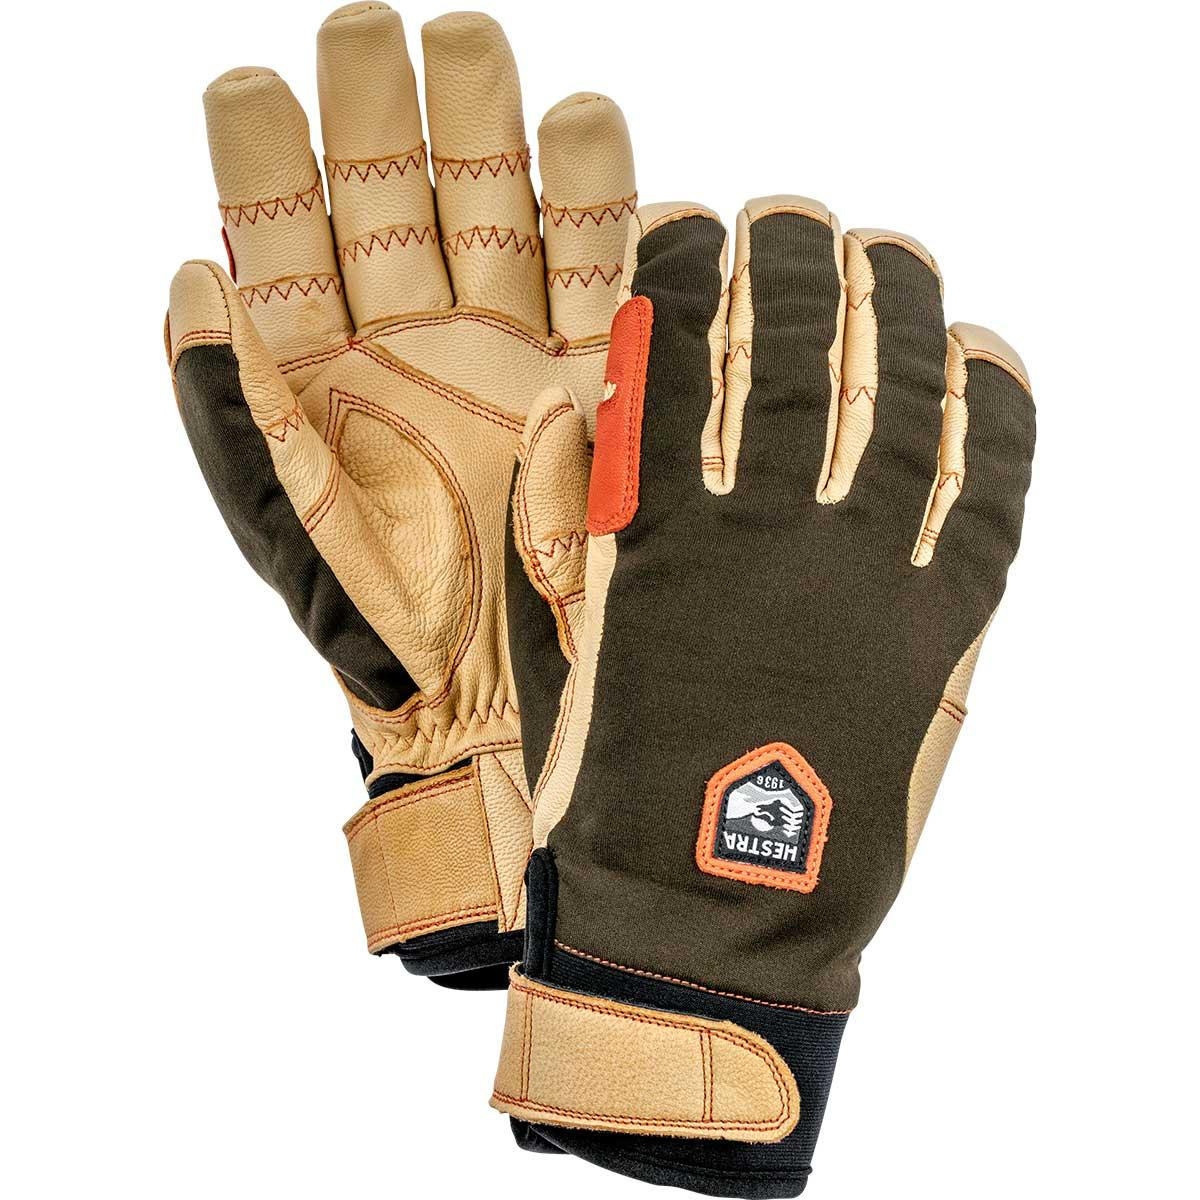 Hestra Ergo Grip Active Gloves in dark forest brown